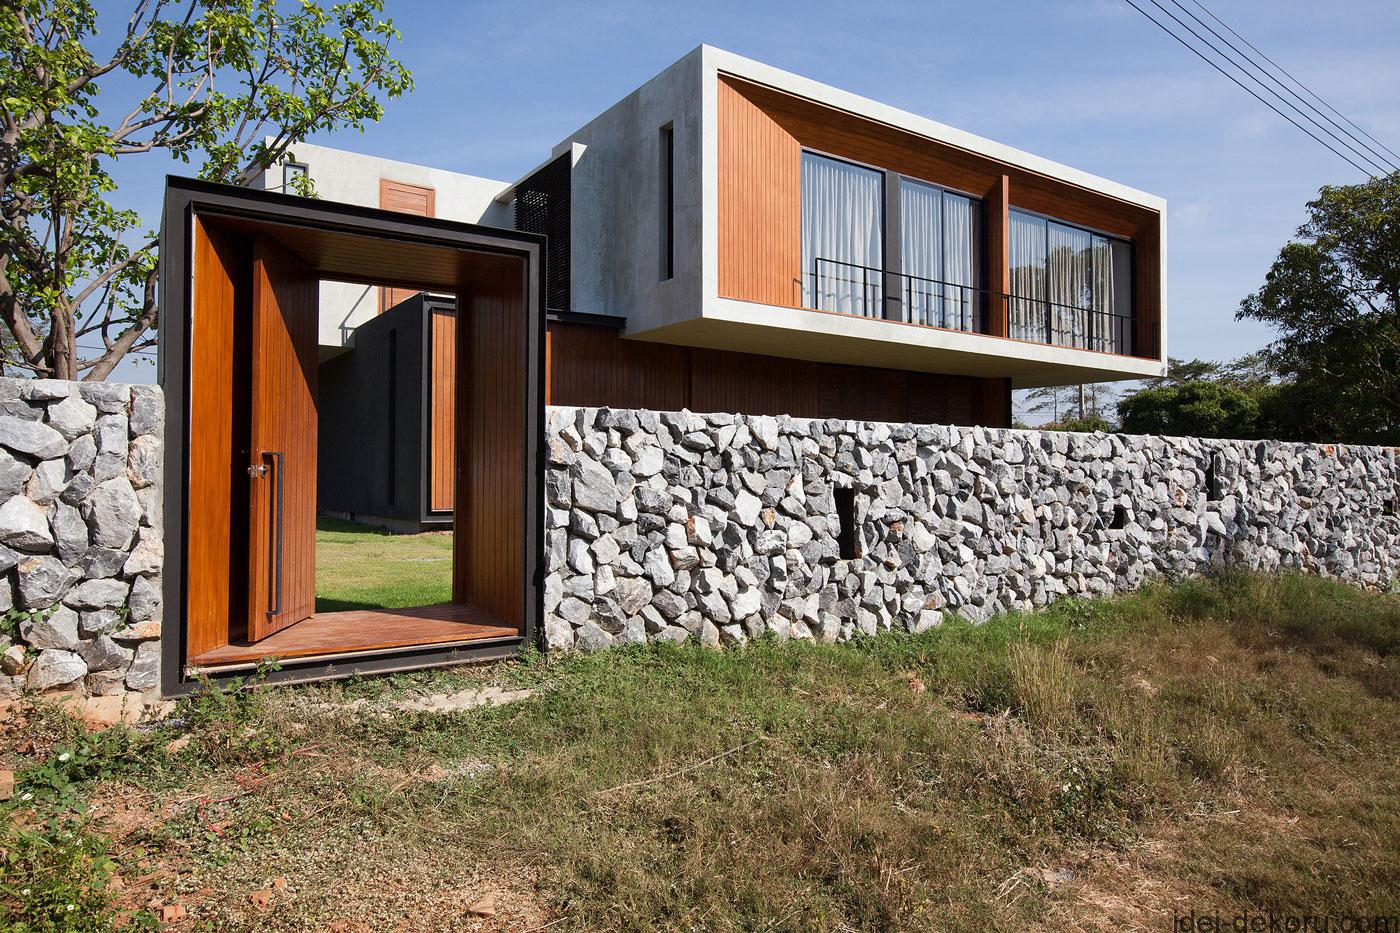 stone-home-fence-designs-mixed-with-wooden-gate-cheap-modern-house-gates-and-fences-designs